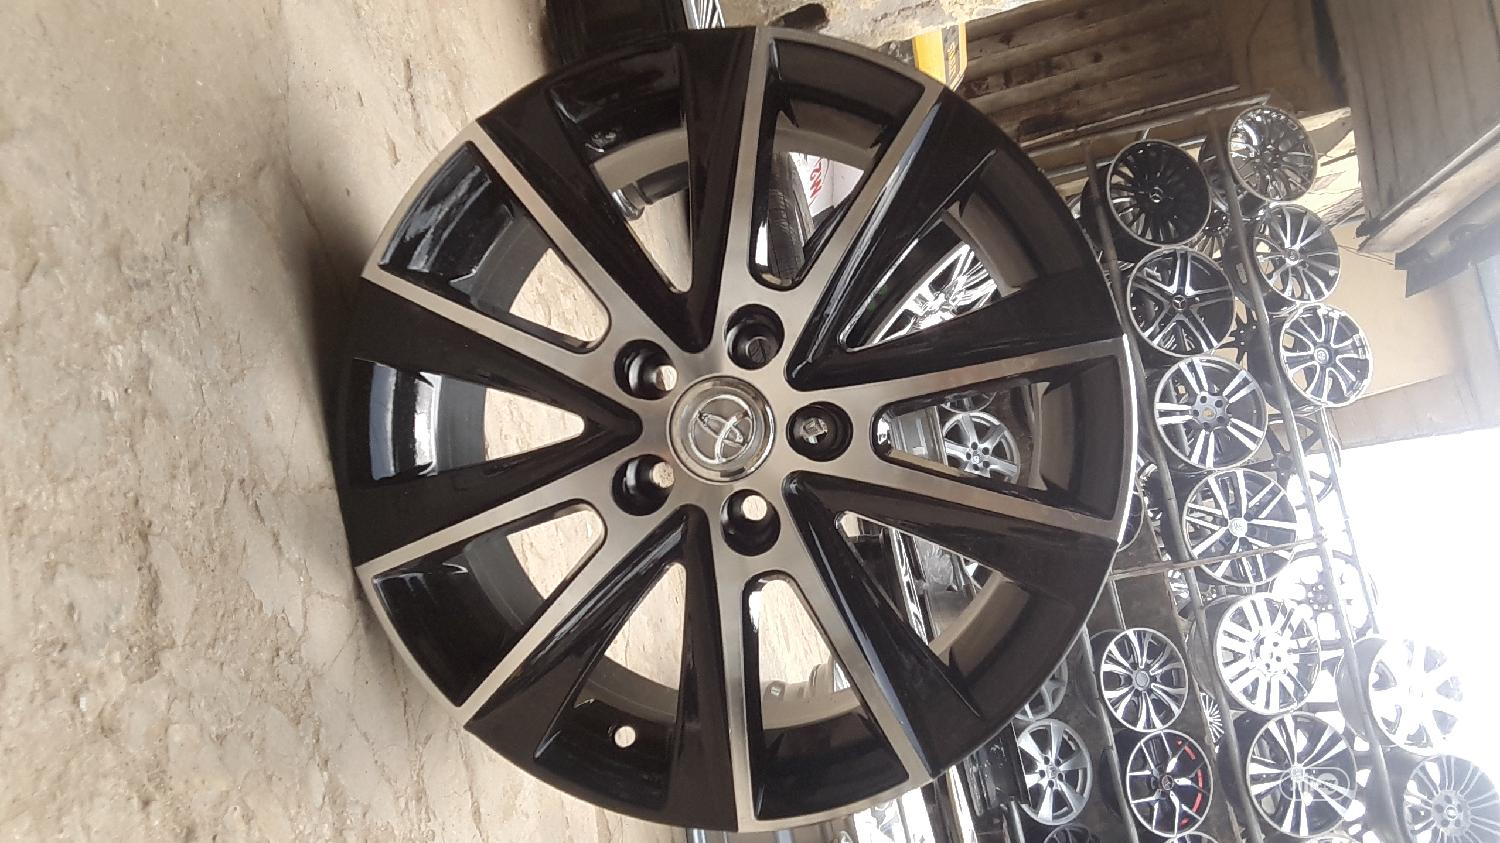 16inch For Corolla, Pontiac, Golf Etc